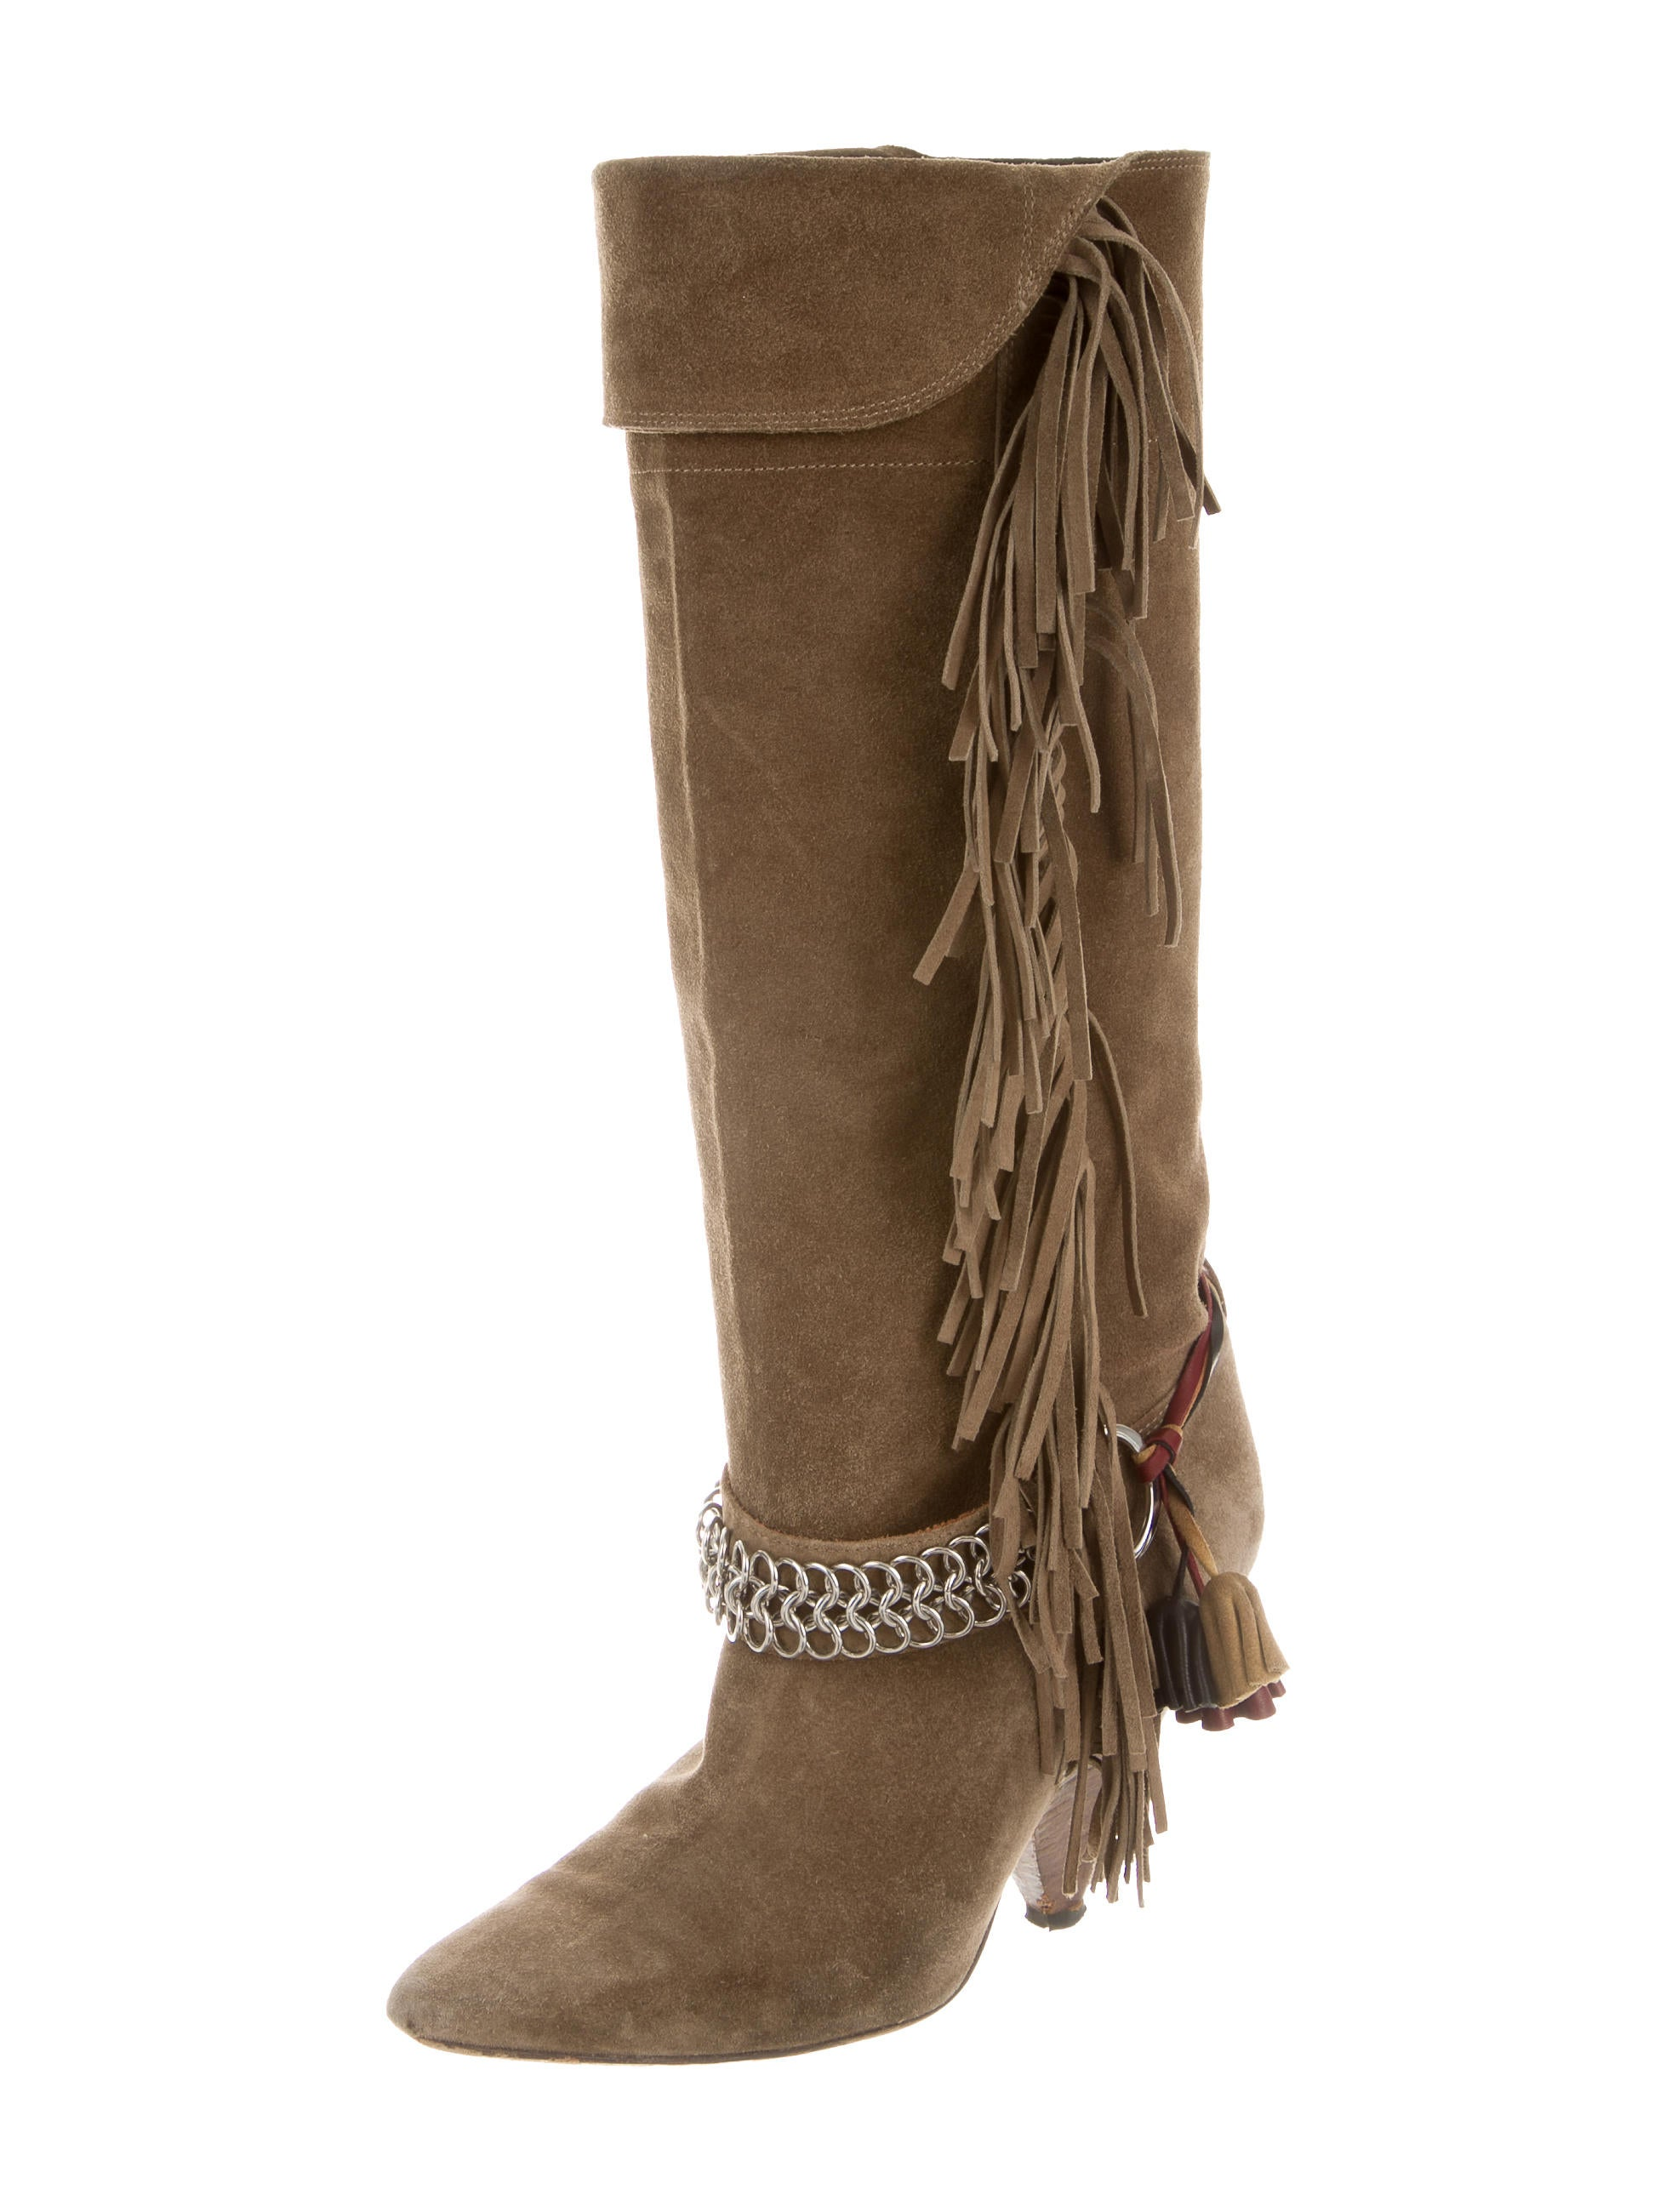 marant fringe knee high boots shoes isa36739